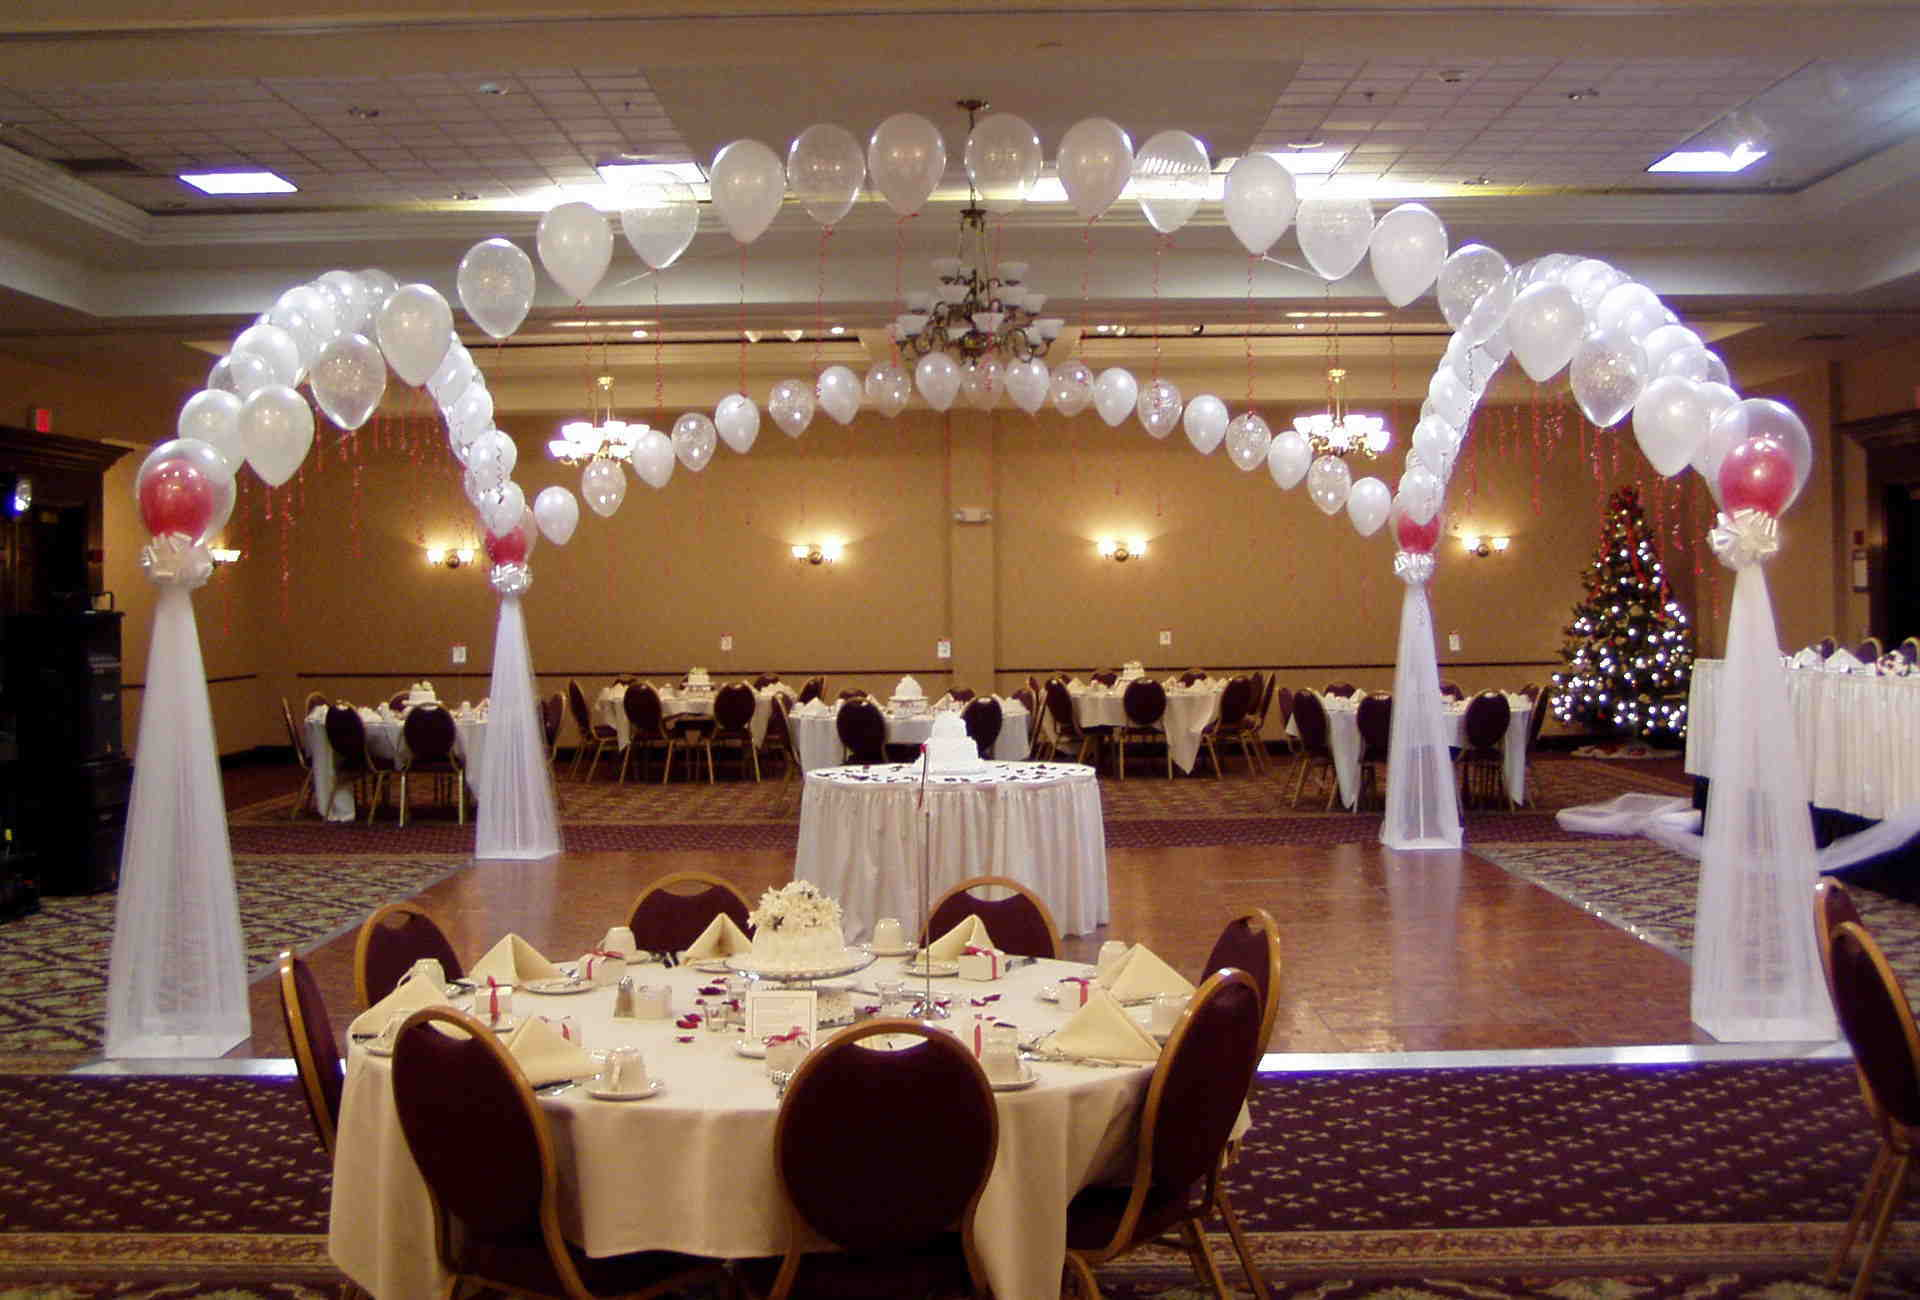 Wedding balloon decorations ideas party favors ideas for Ballon wedding decoration